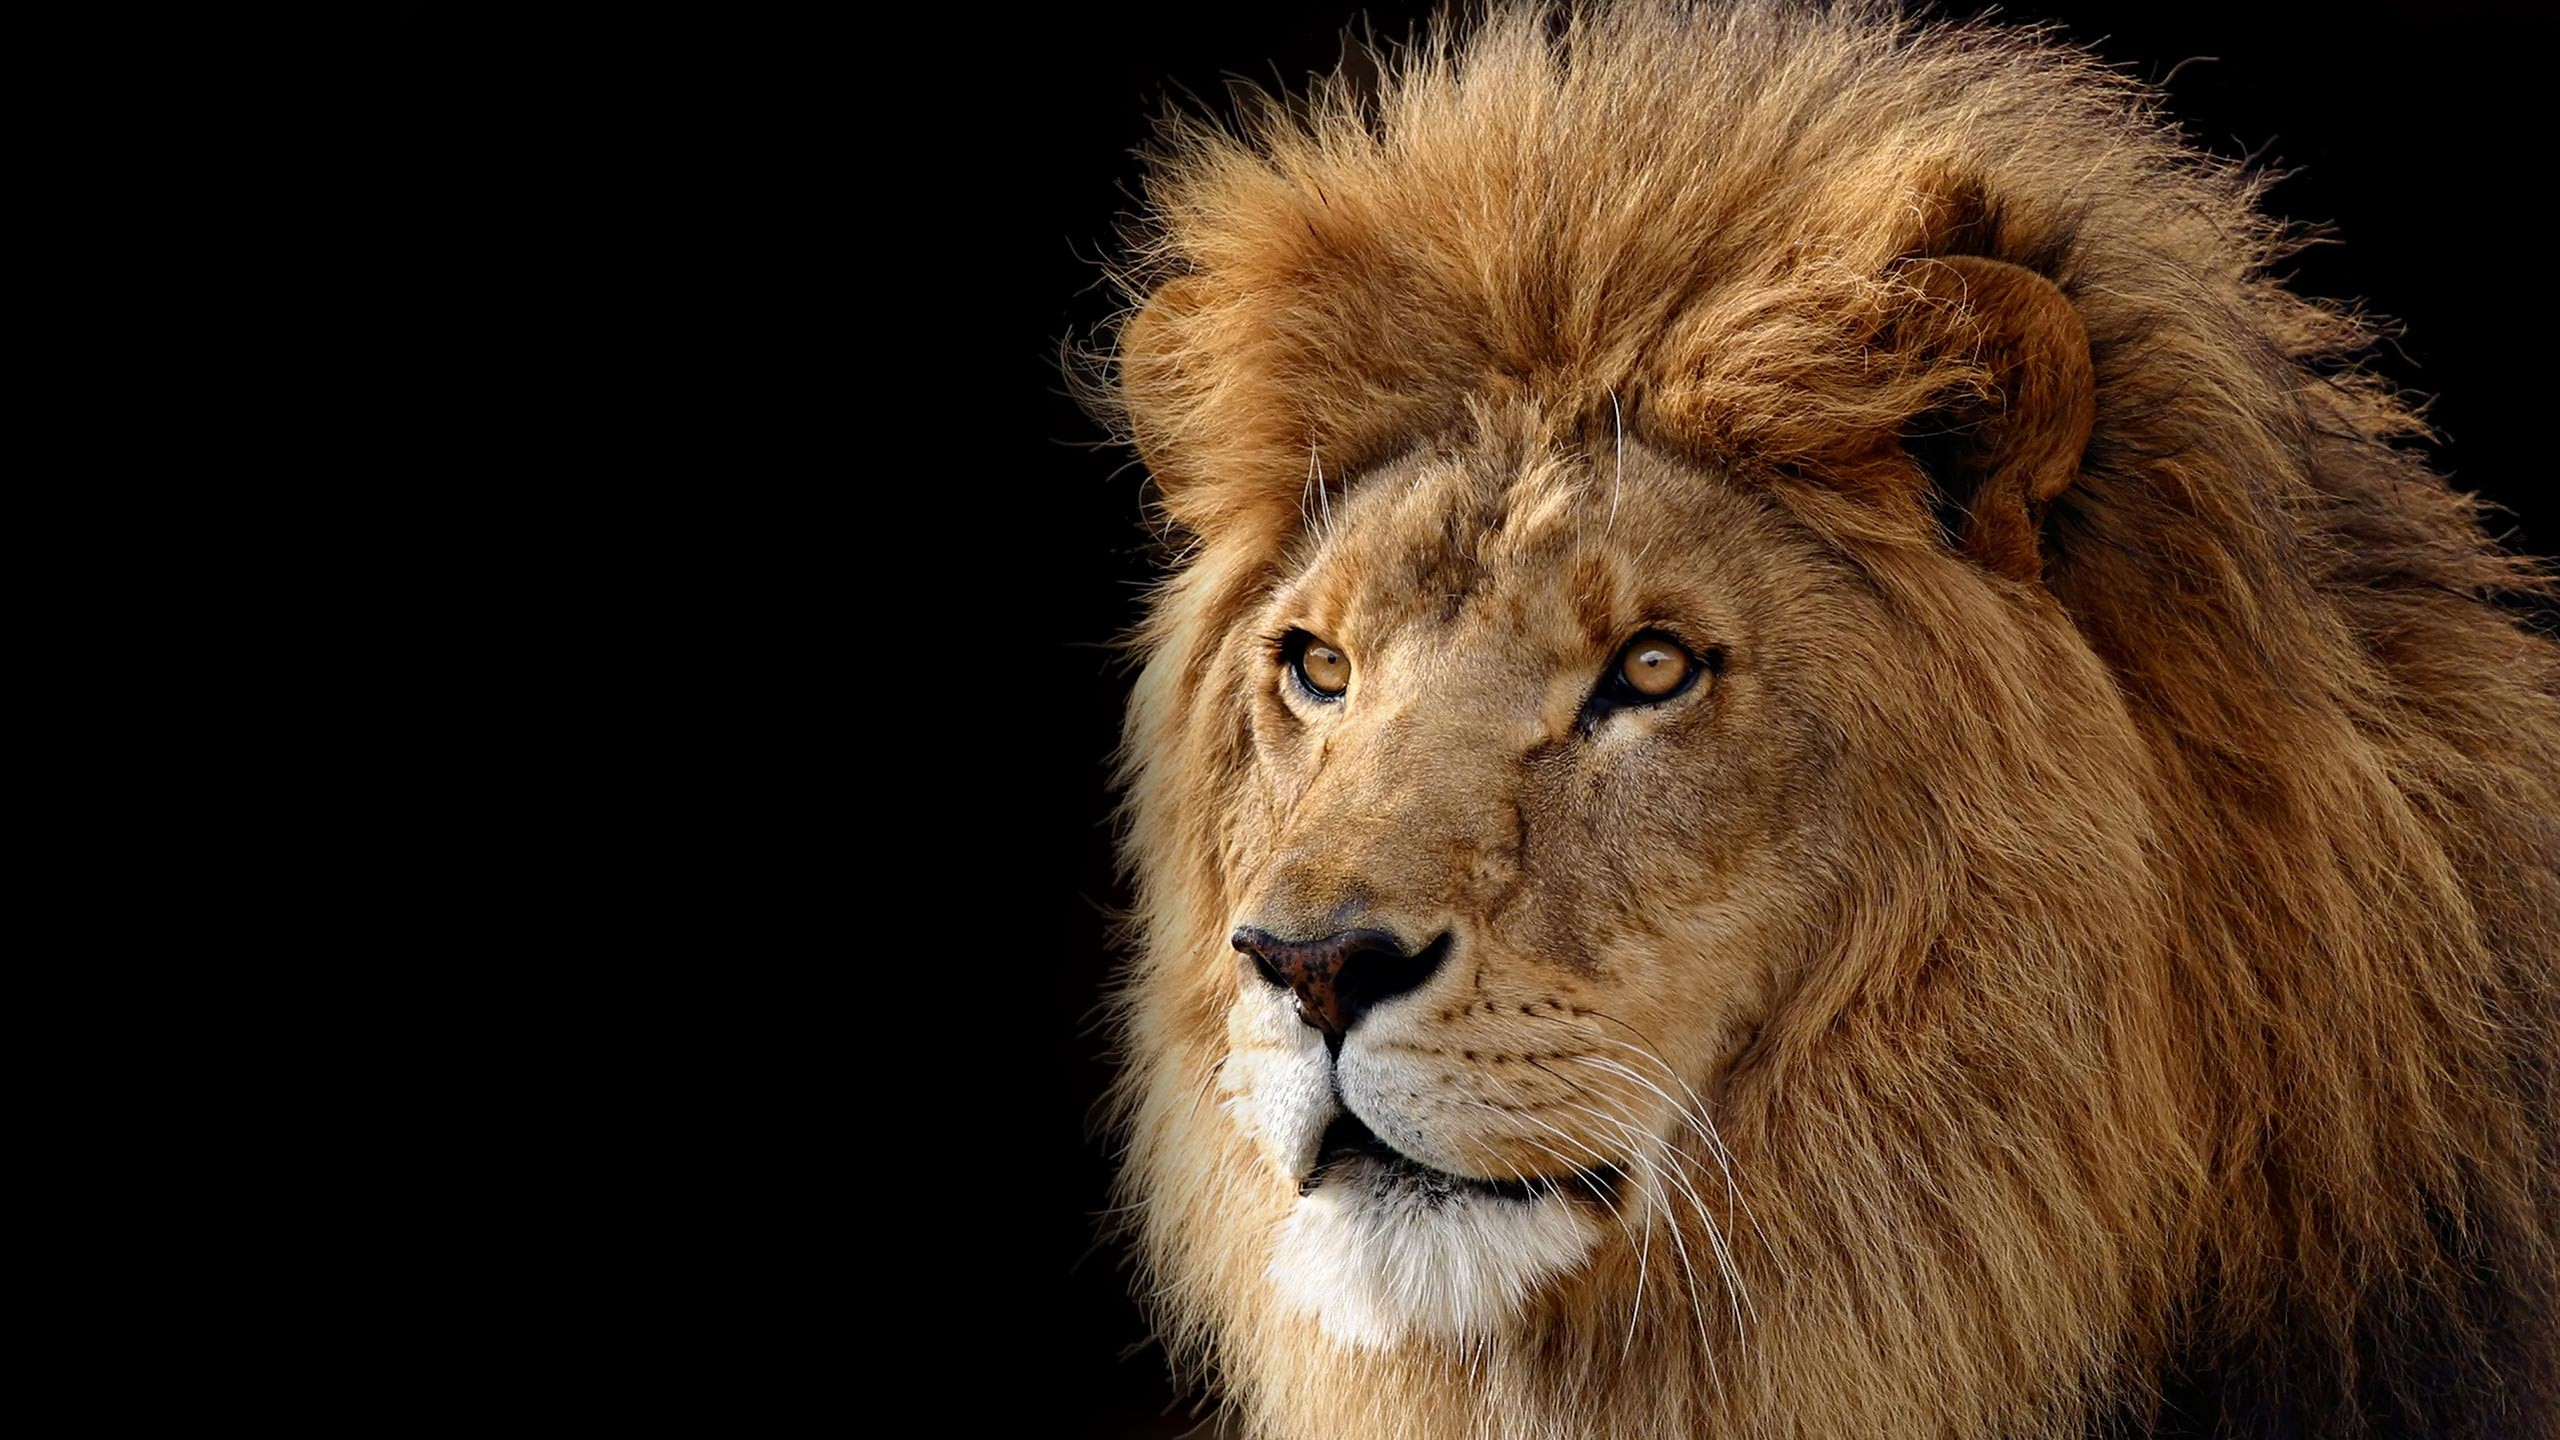 Awesome Lion Wallpaper   feelgrafix.com   Pinterest   Akita, High quality  wallpapers and Animal categories